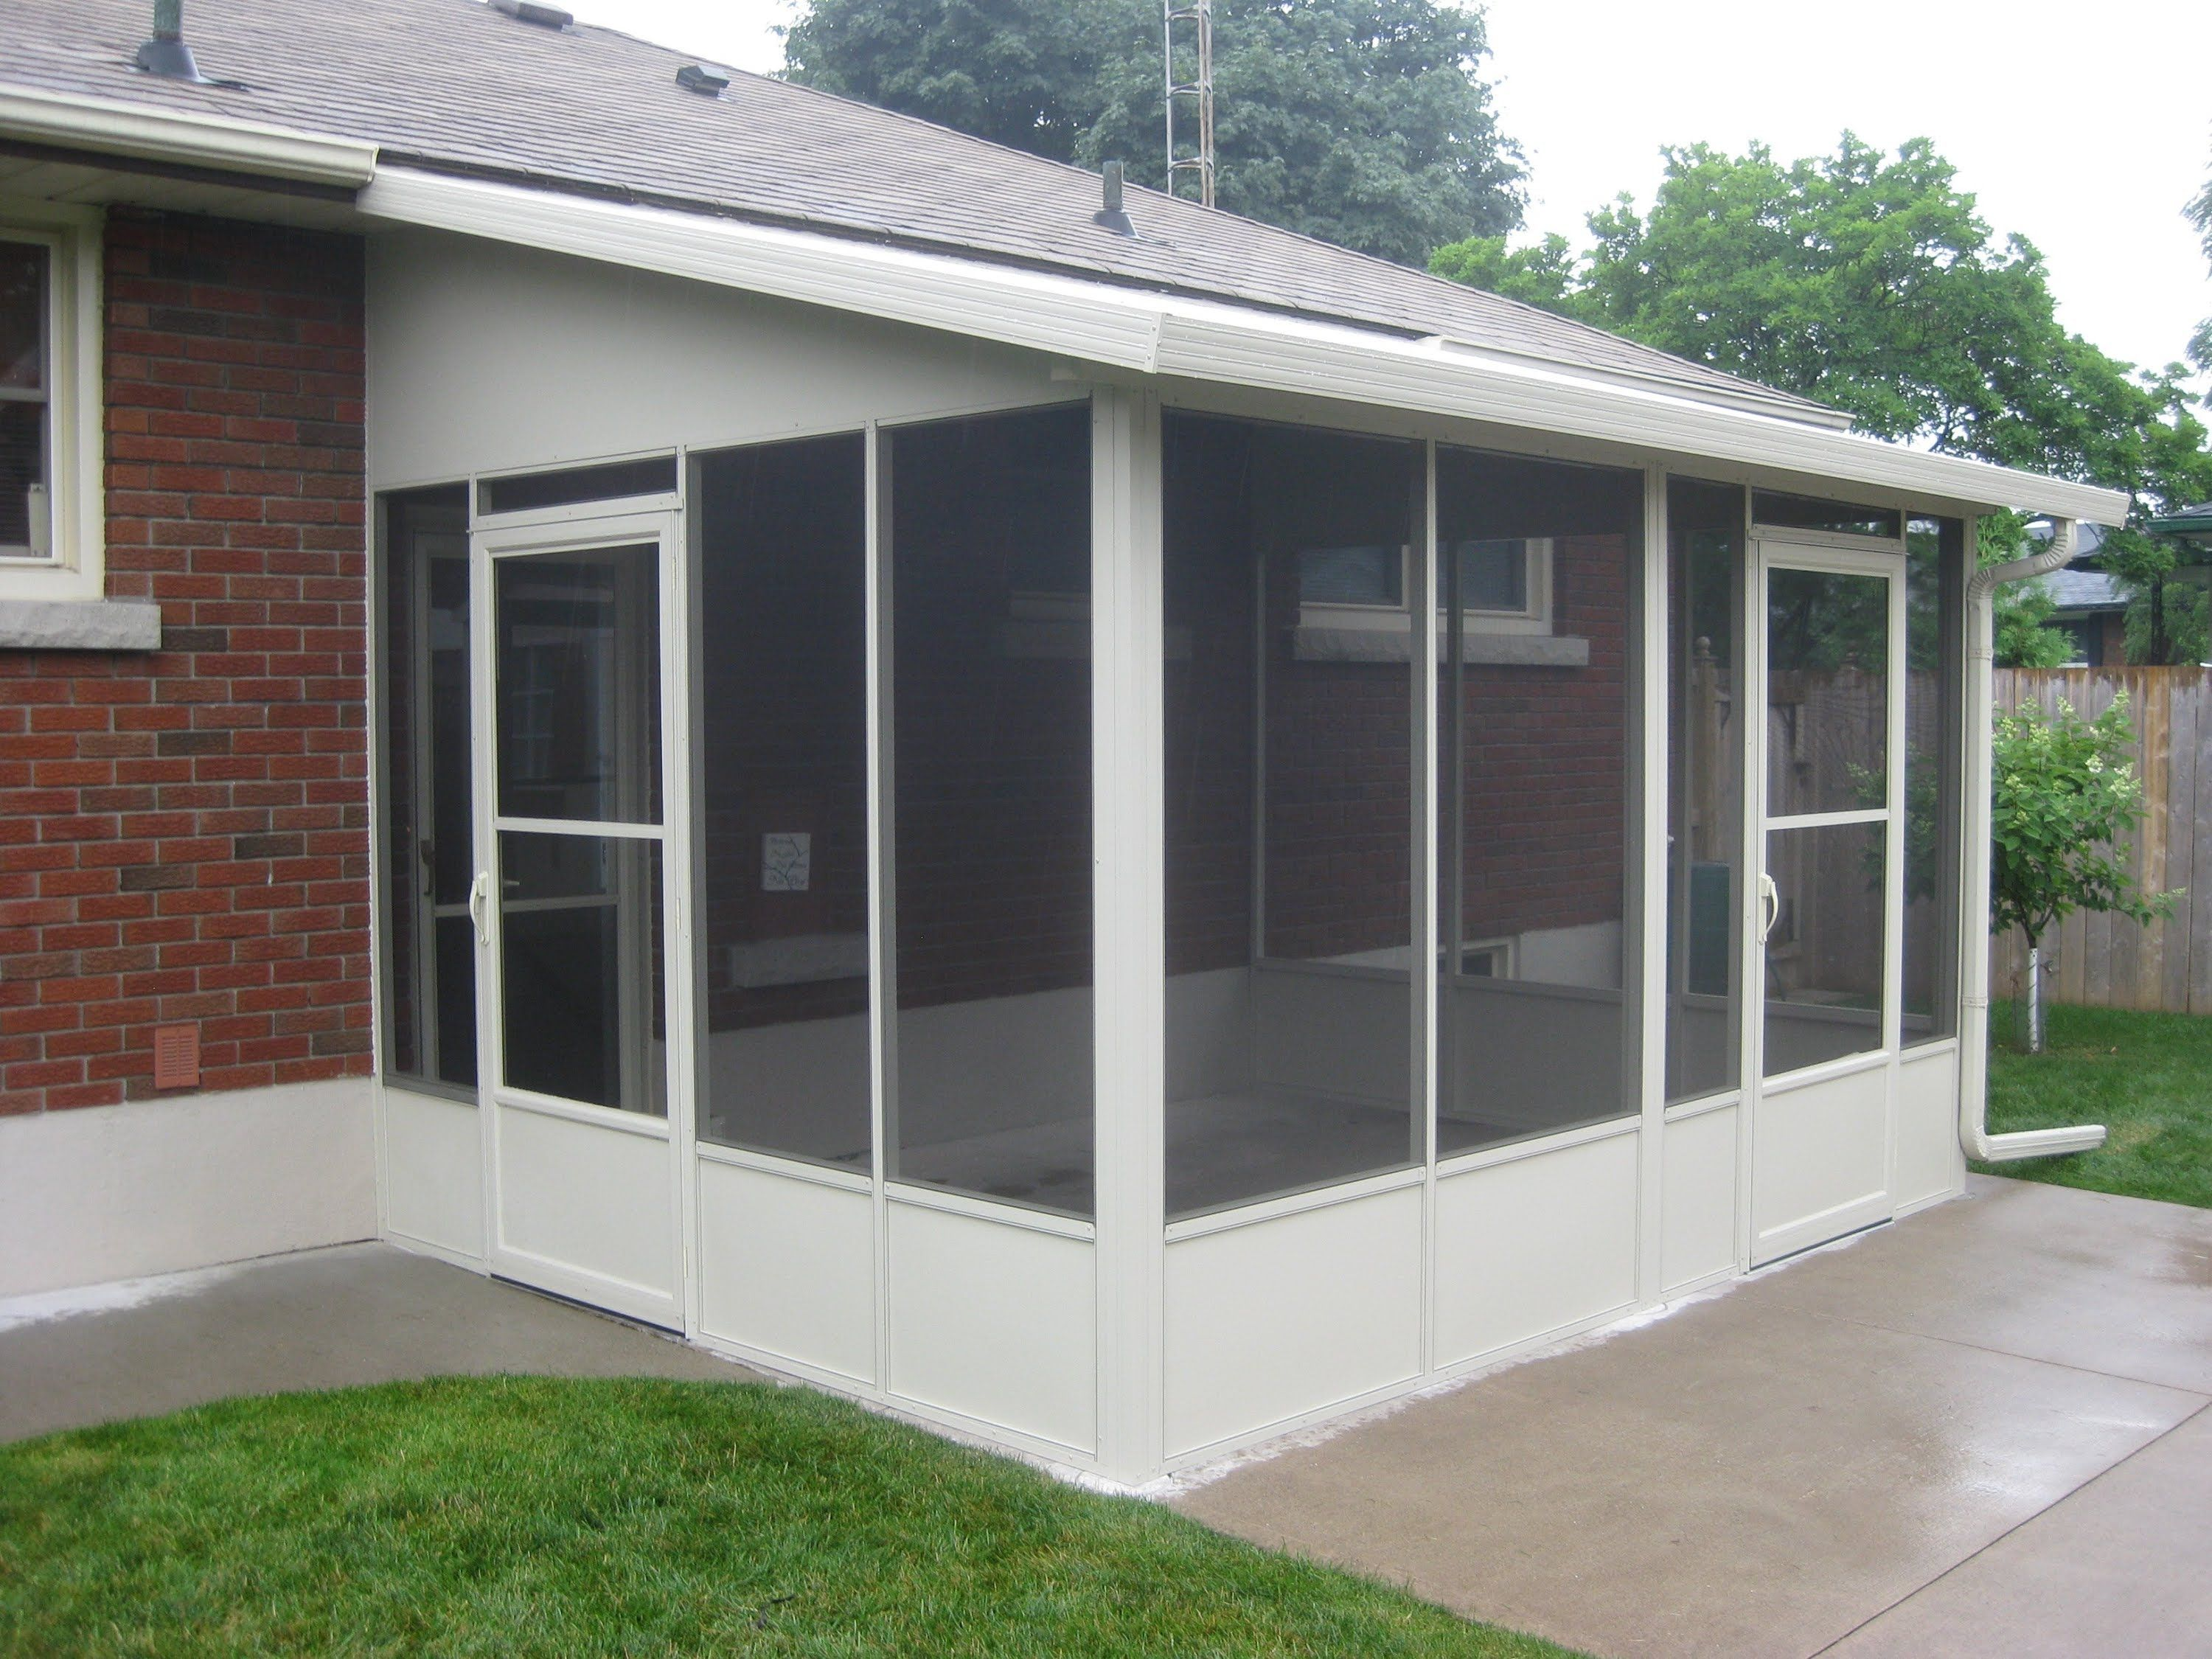 An Awesome Way To Bug Proof Your Patio Vista Screen Rooms Youtube Small Screened Porch Screened Porch Designs Screened Porch